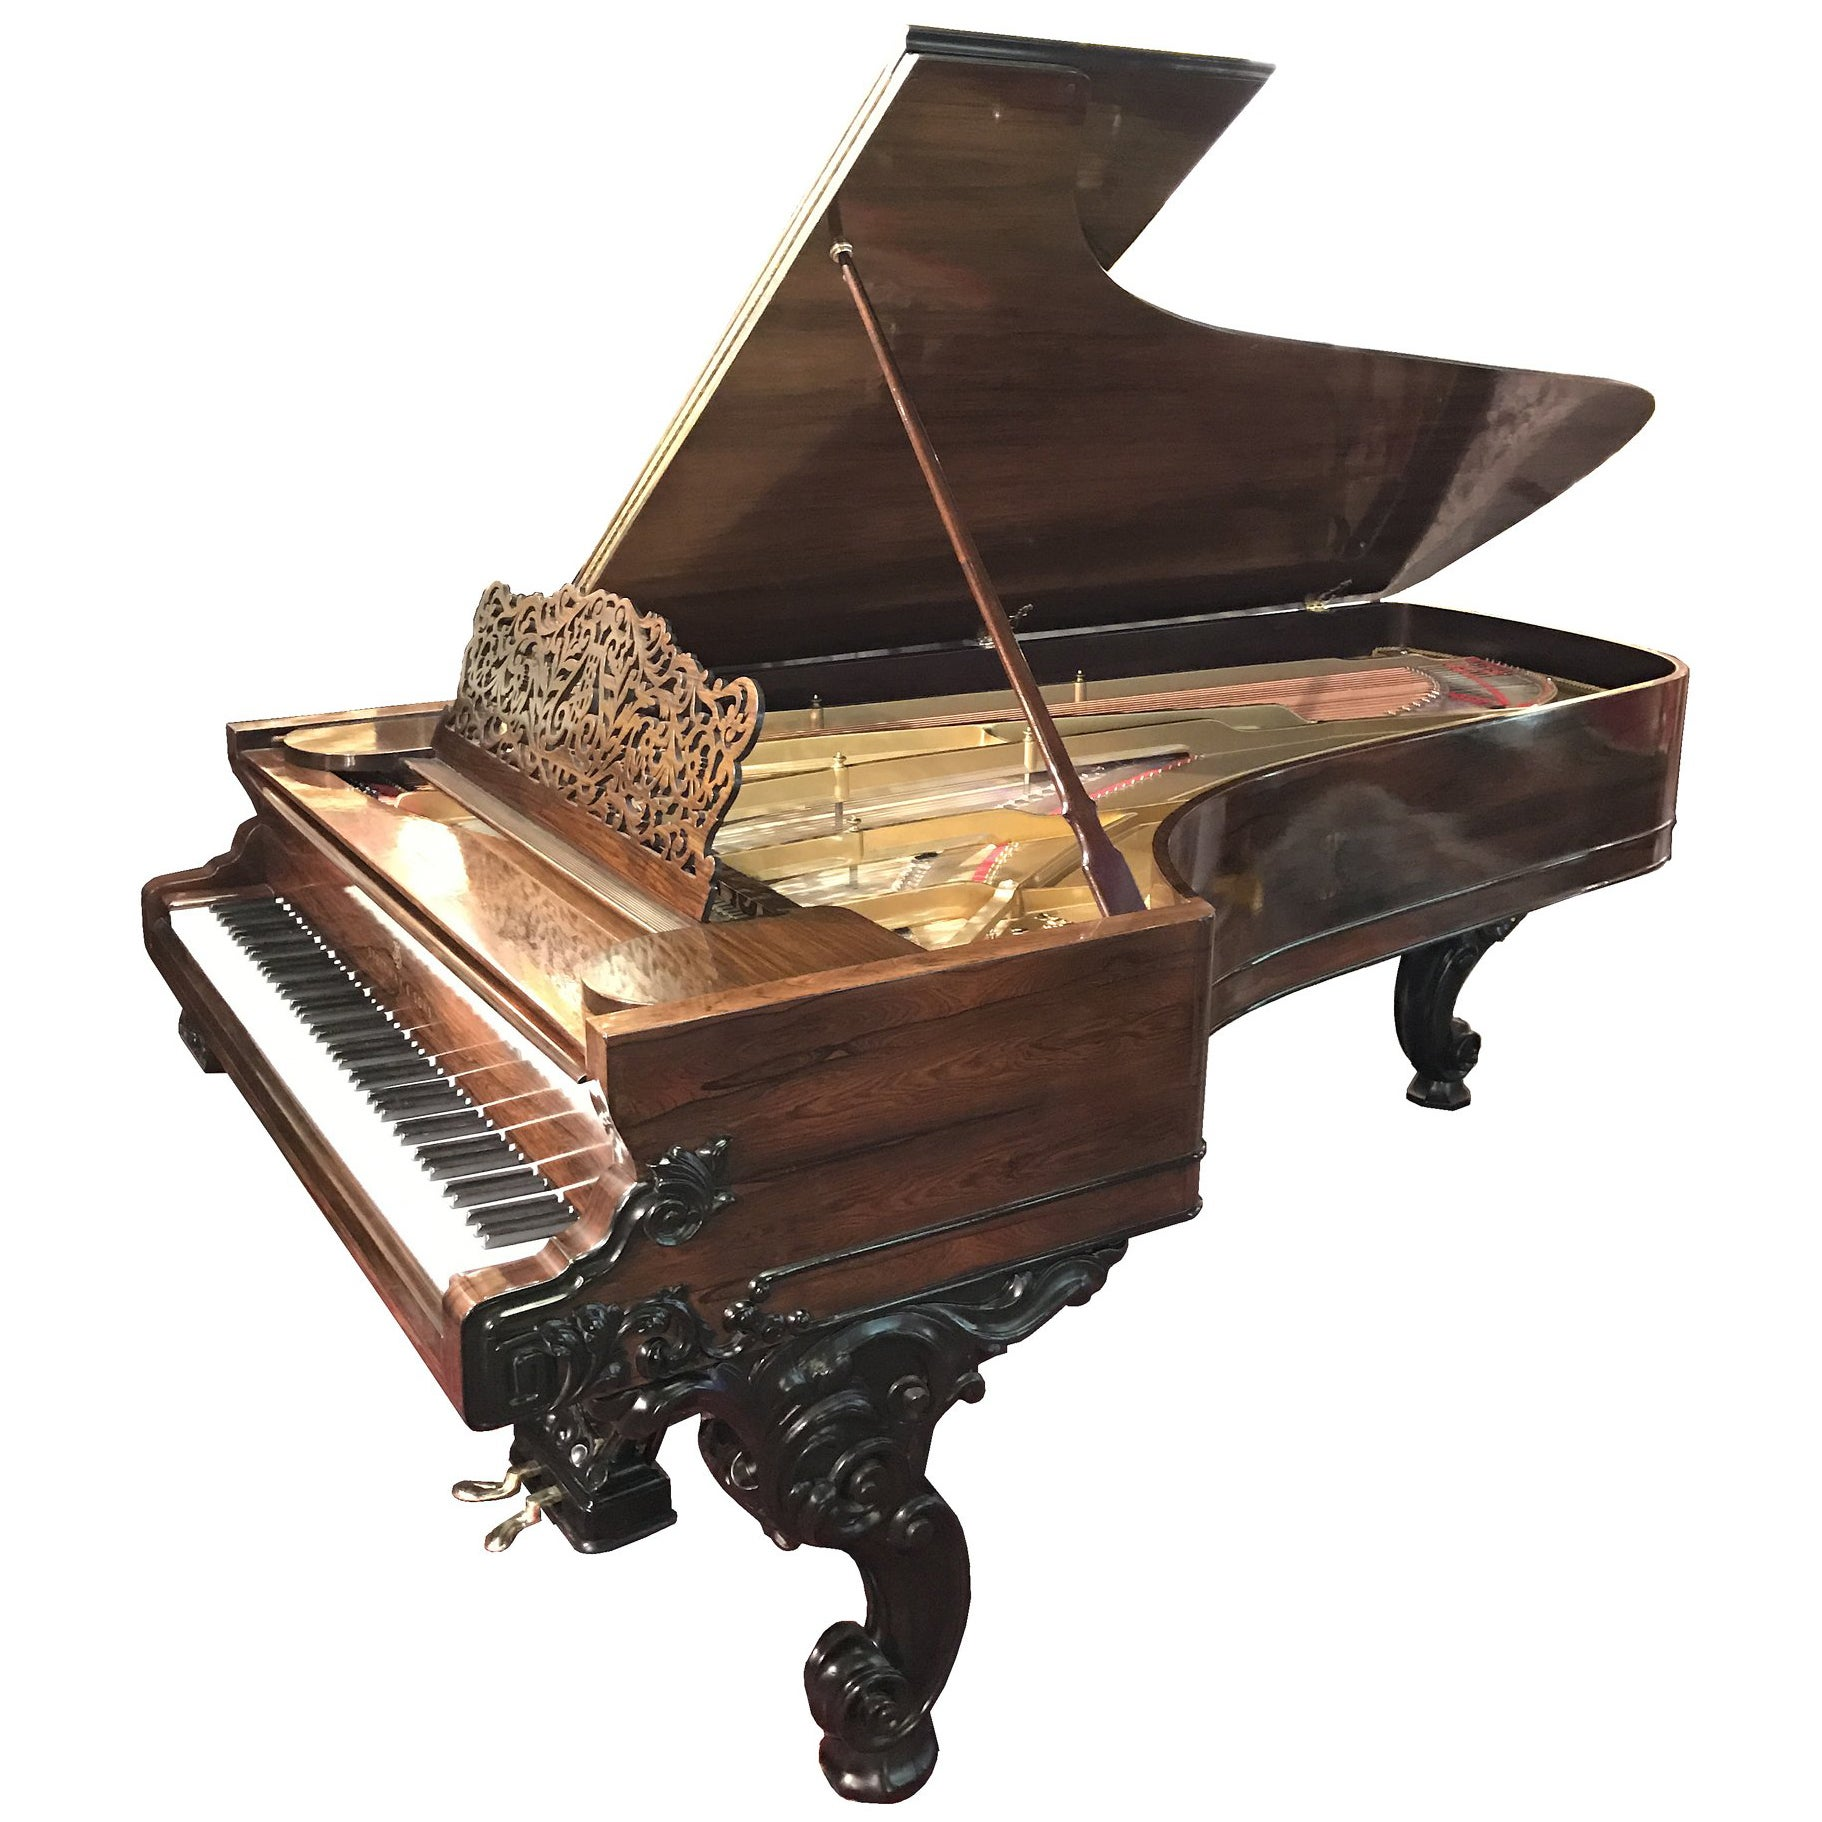 Steinway Concert Grand Piano with Rosewood and Ebonized Case